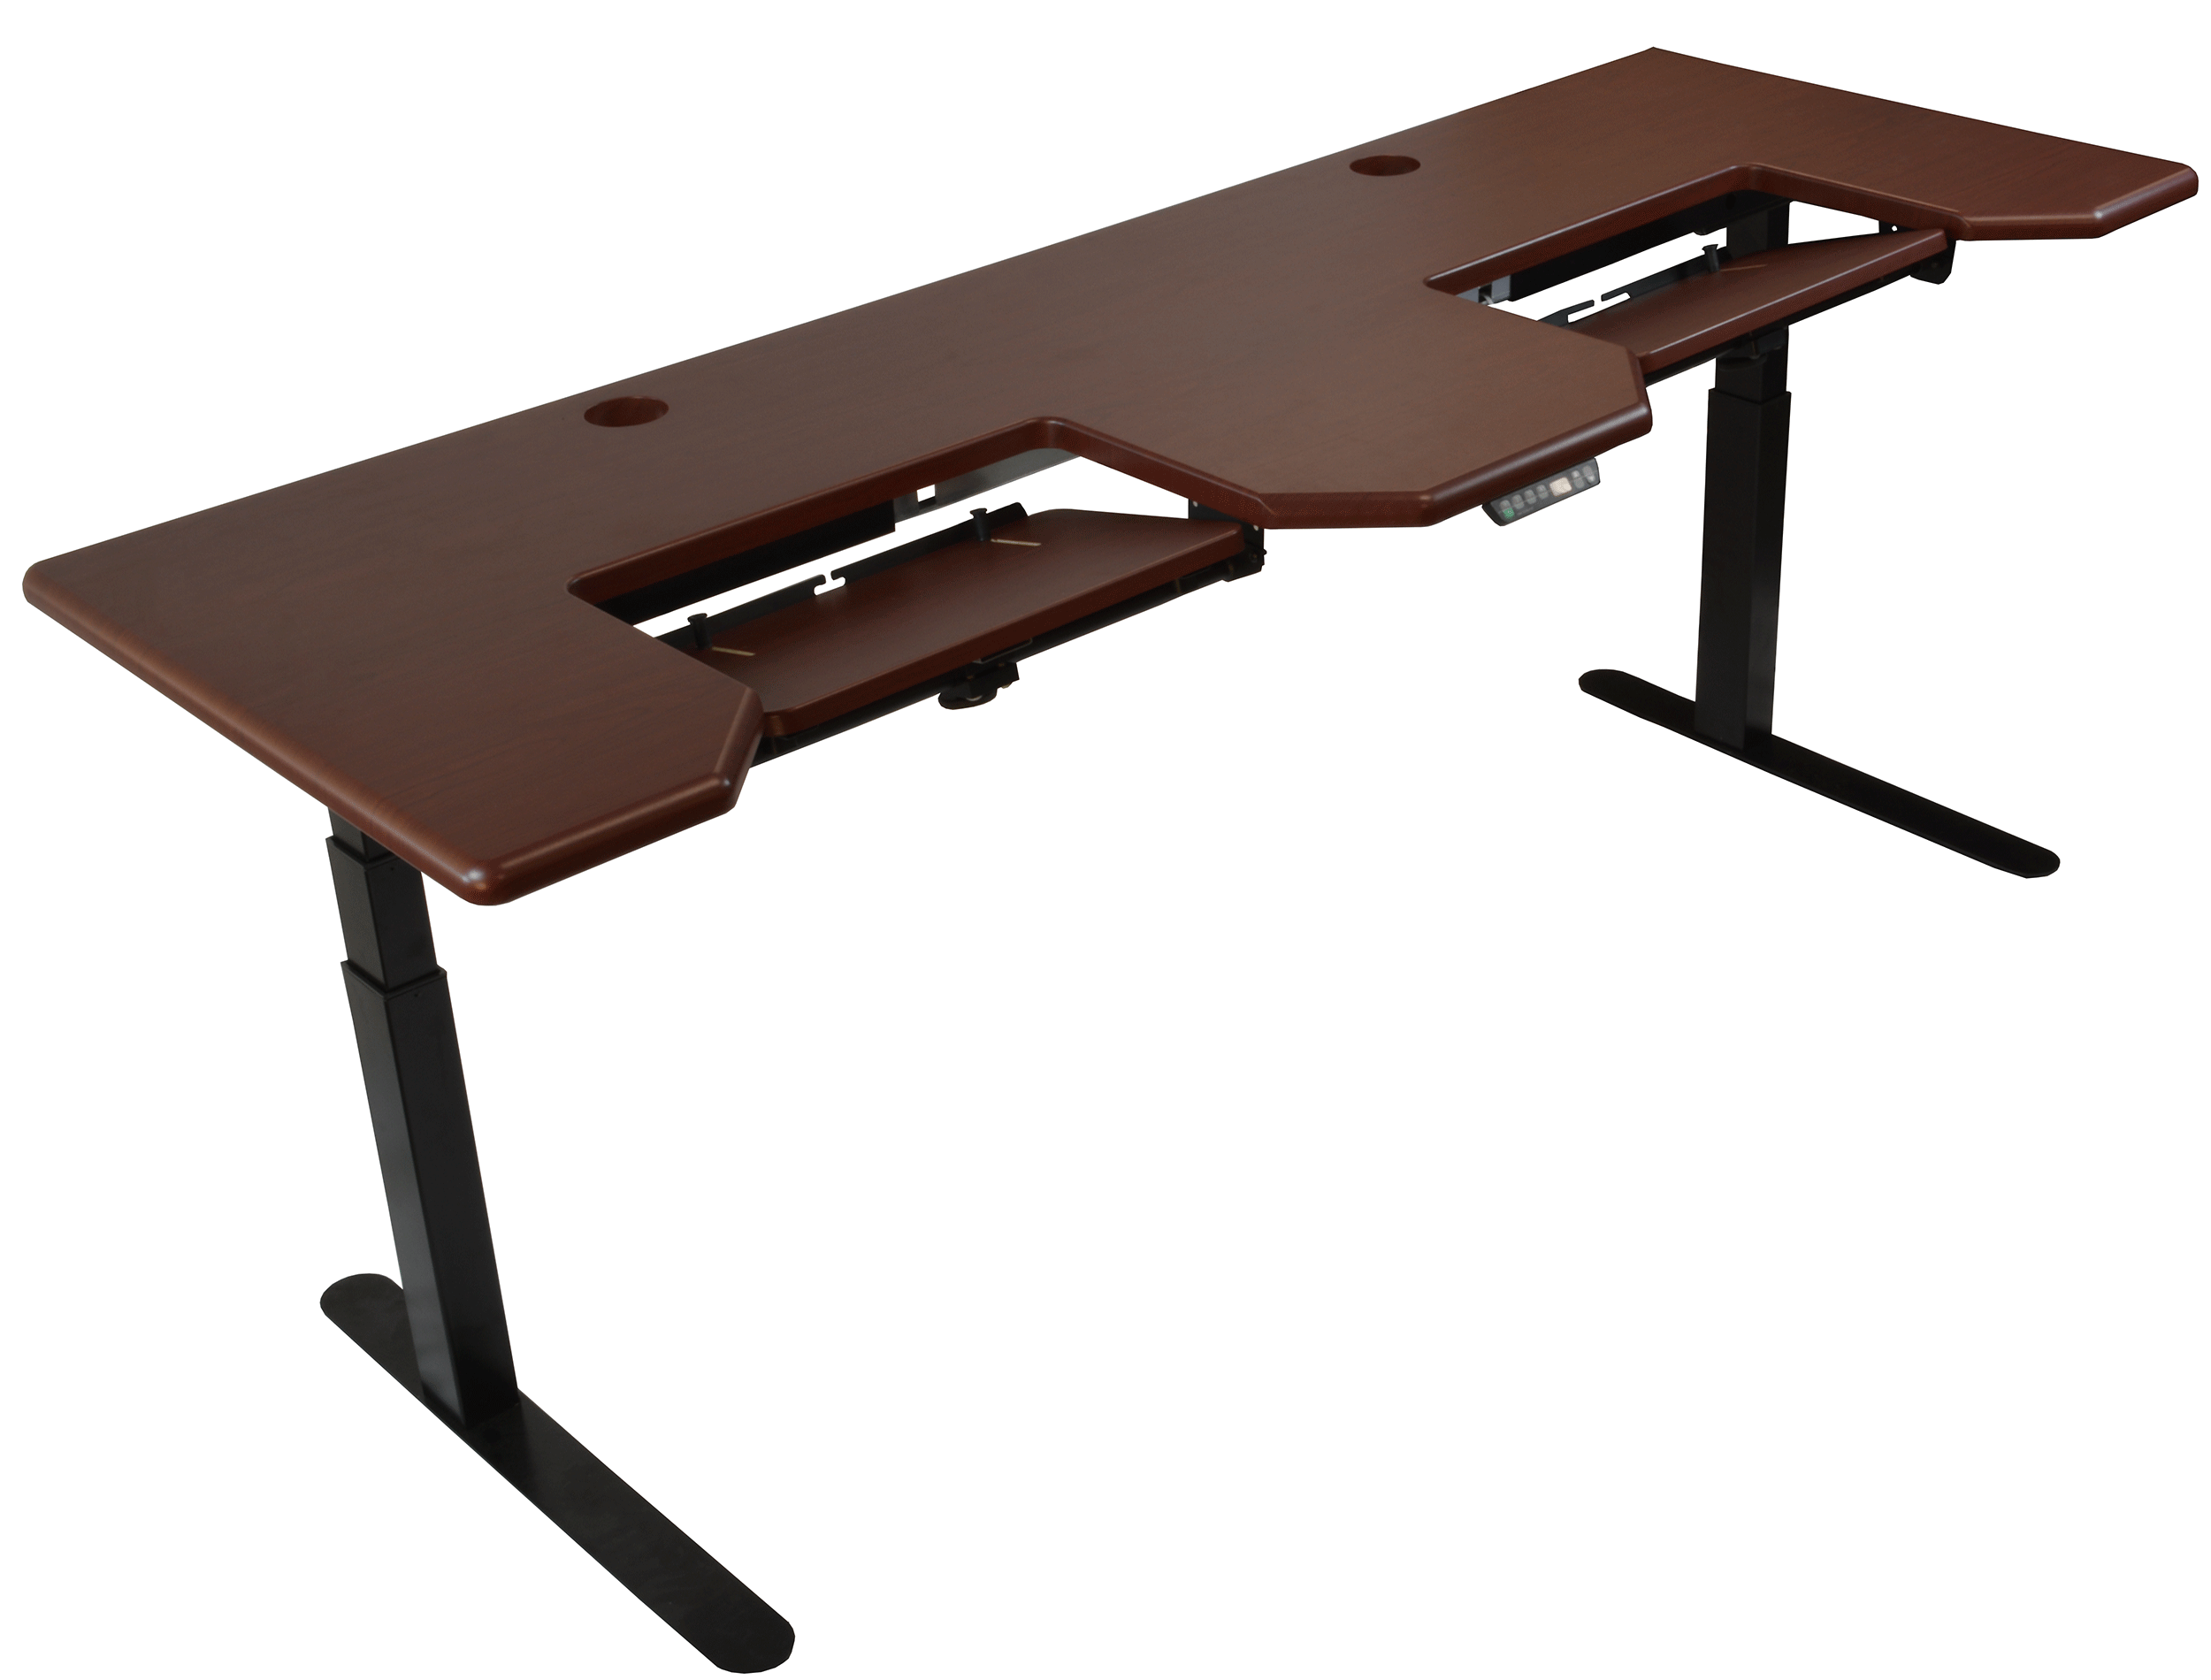 Imovr Omega Everest Electric Standing Desk Review